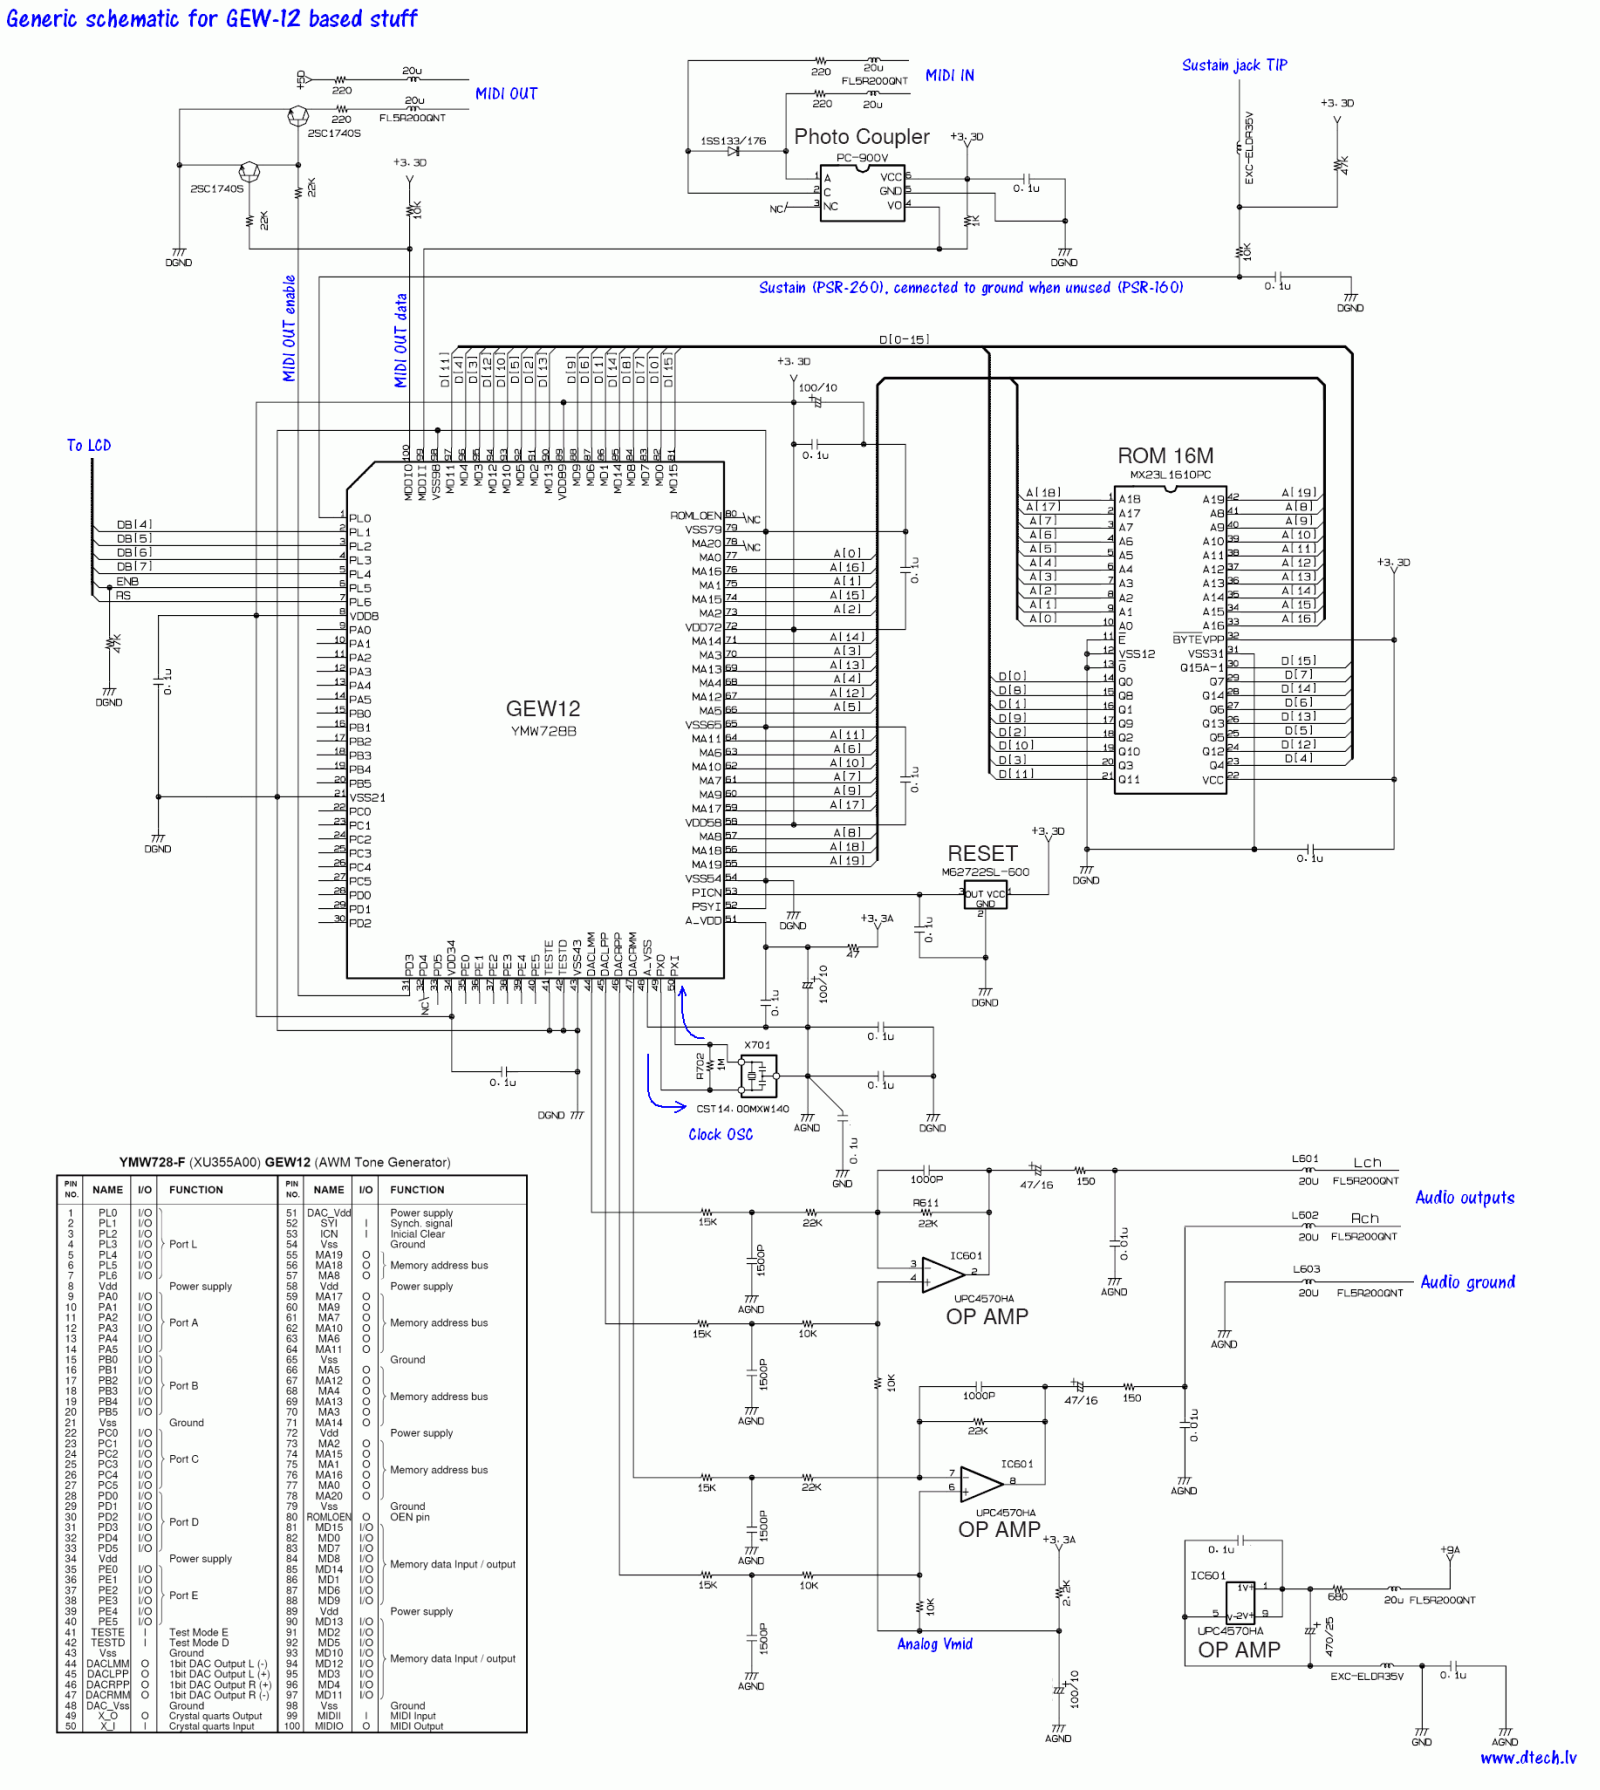 Edward D Tech Website Music Code 3 Led X 2100 Wiring Diagram Pinout And Generic Synth Schematic